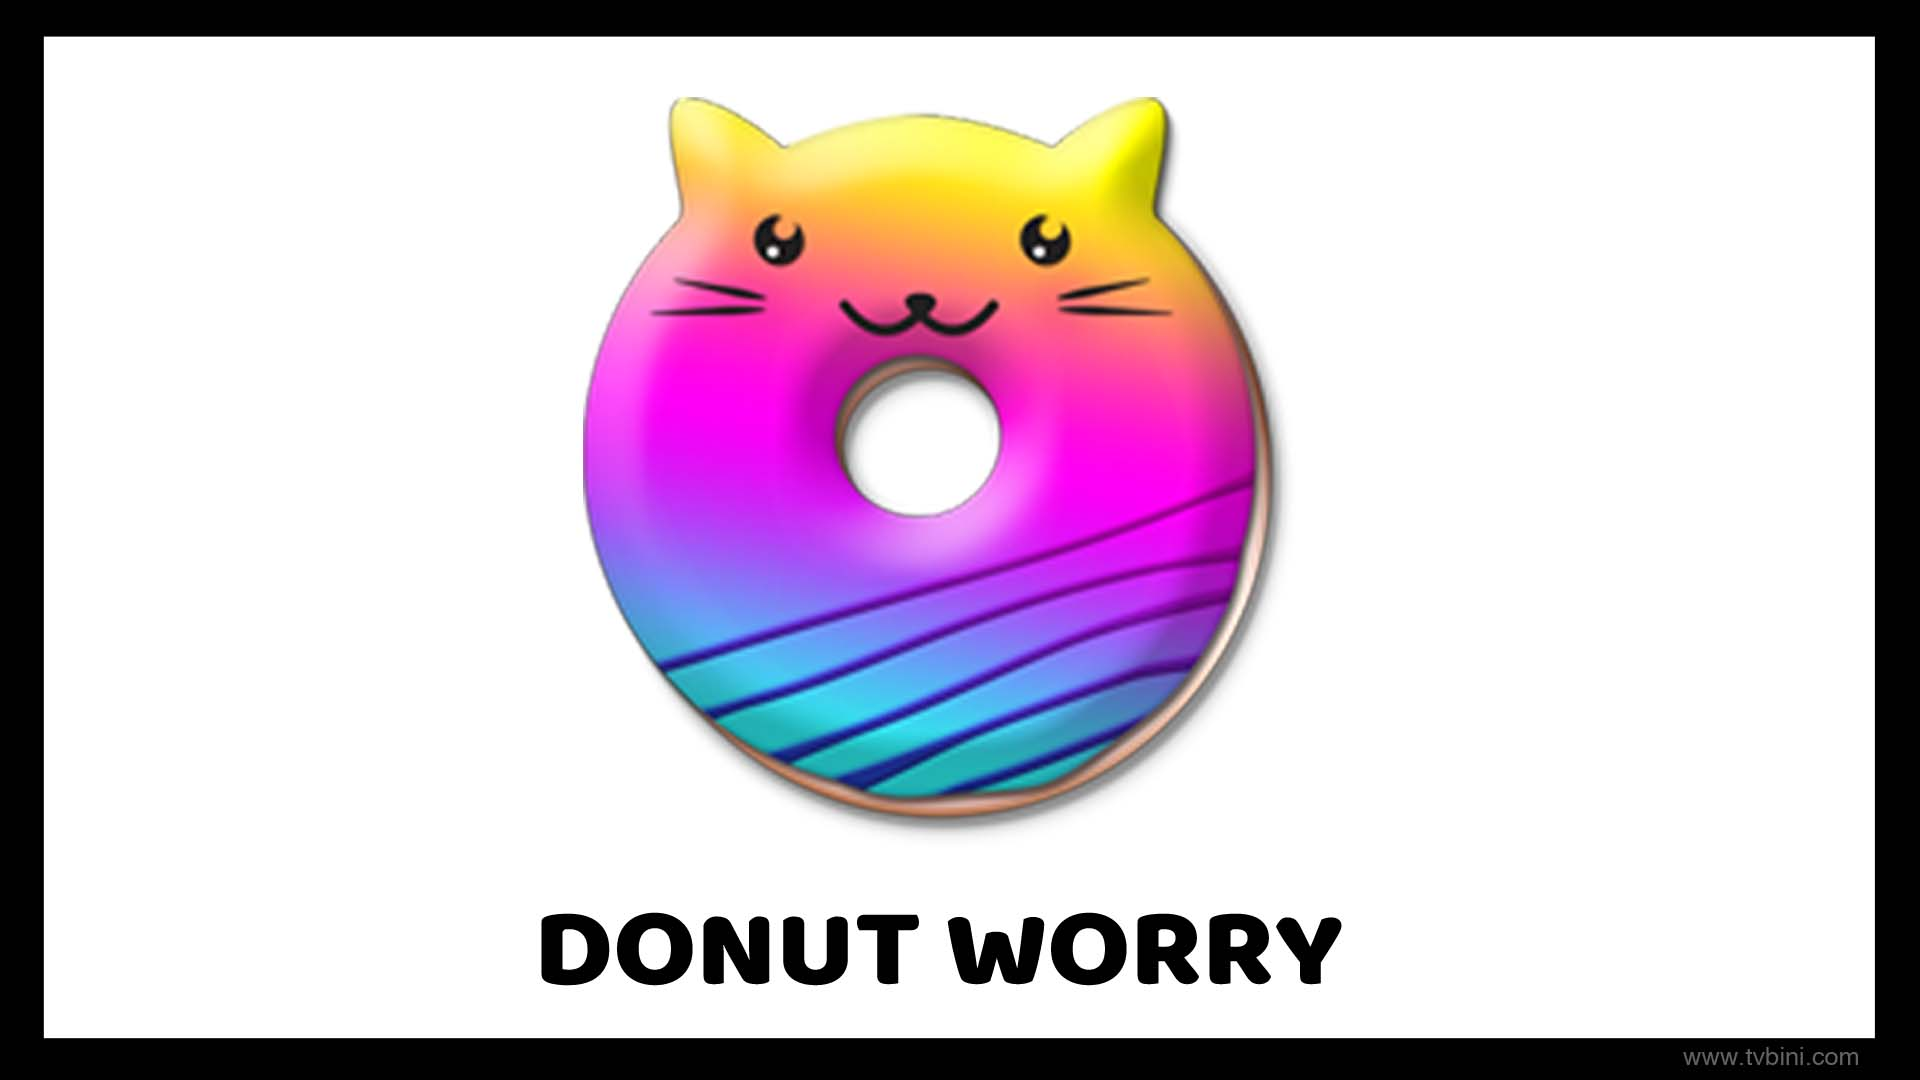 donut worry tvbini videos for cats.jpg